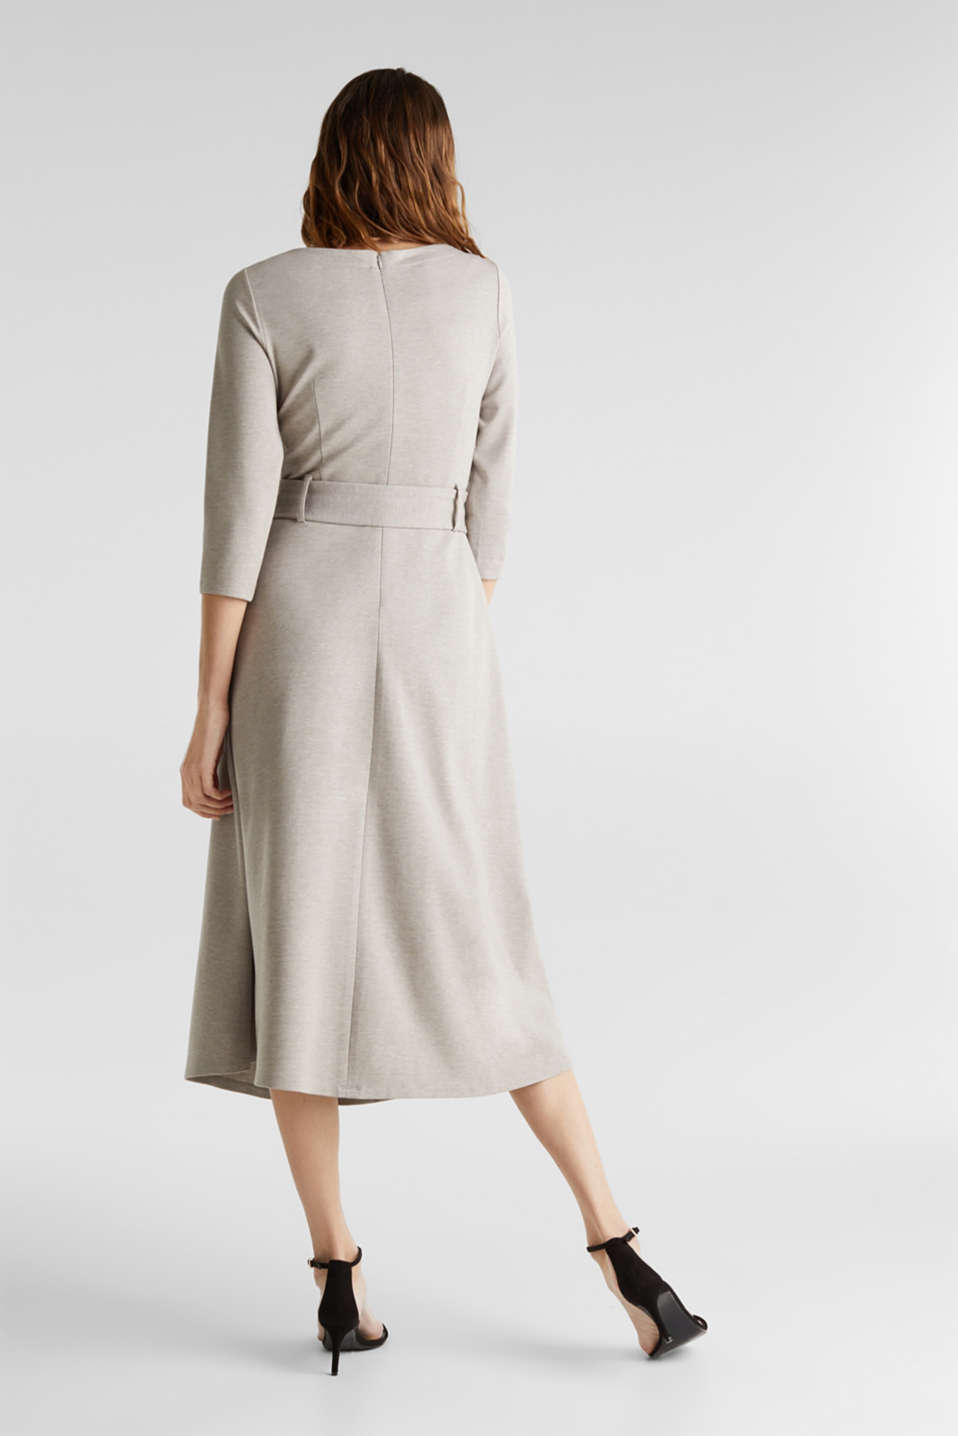 Stretch jersey dress with a belt, LIGHT BEIGE, detail image number 2